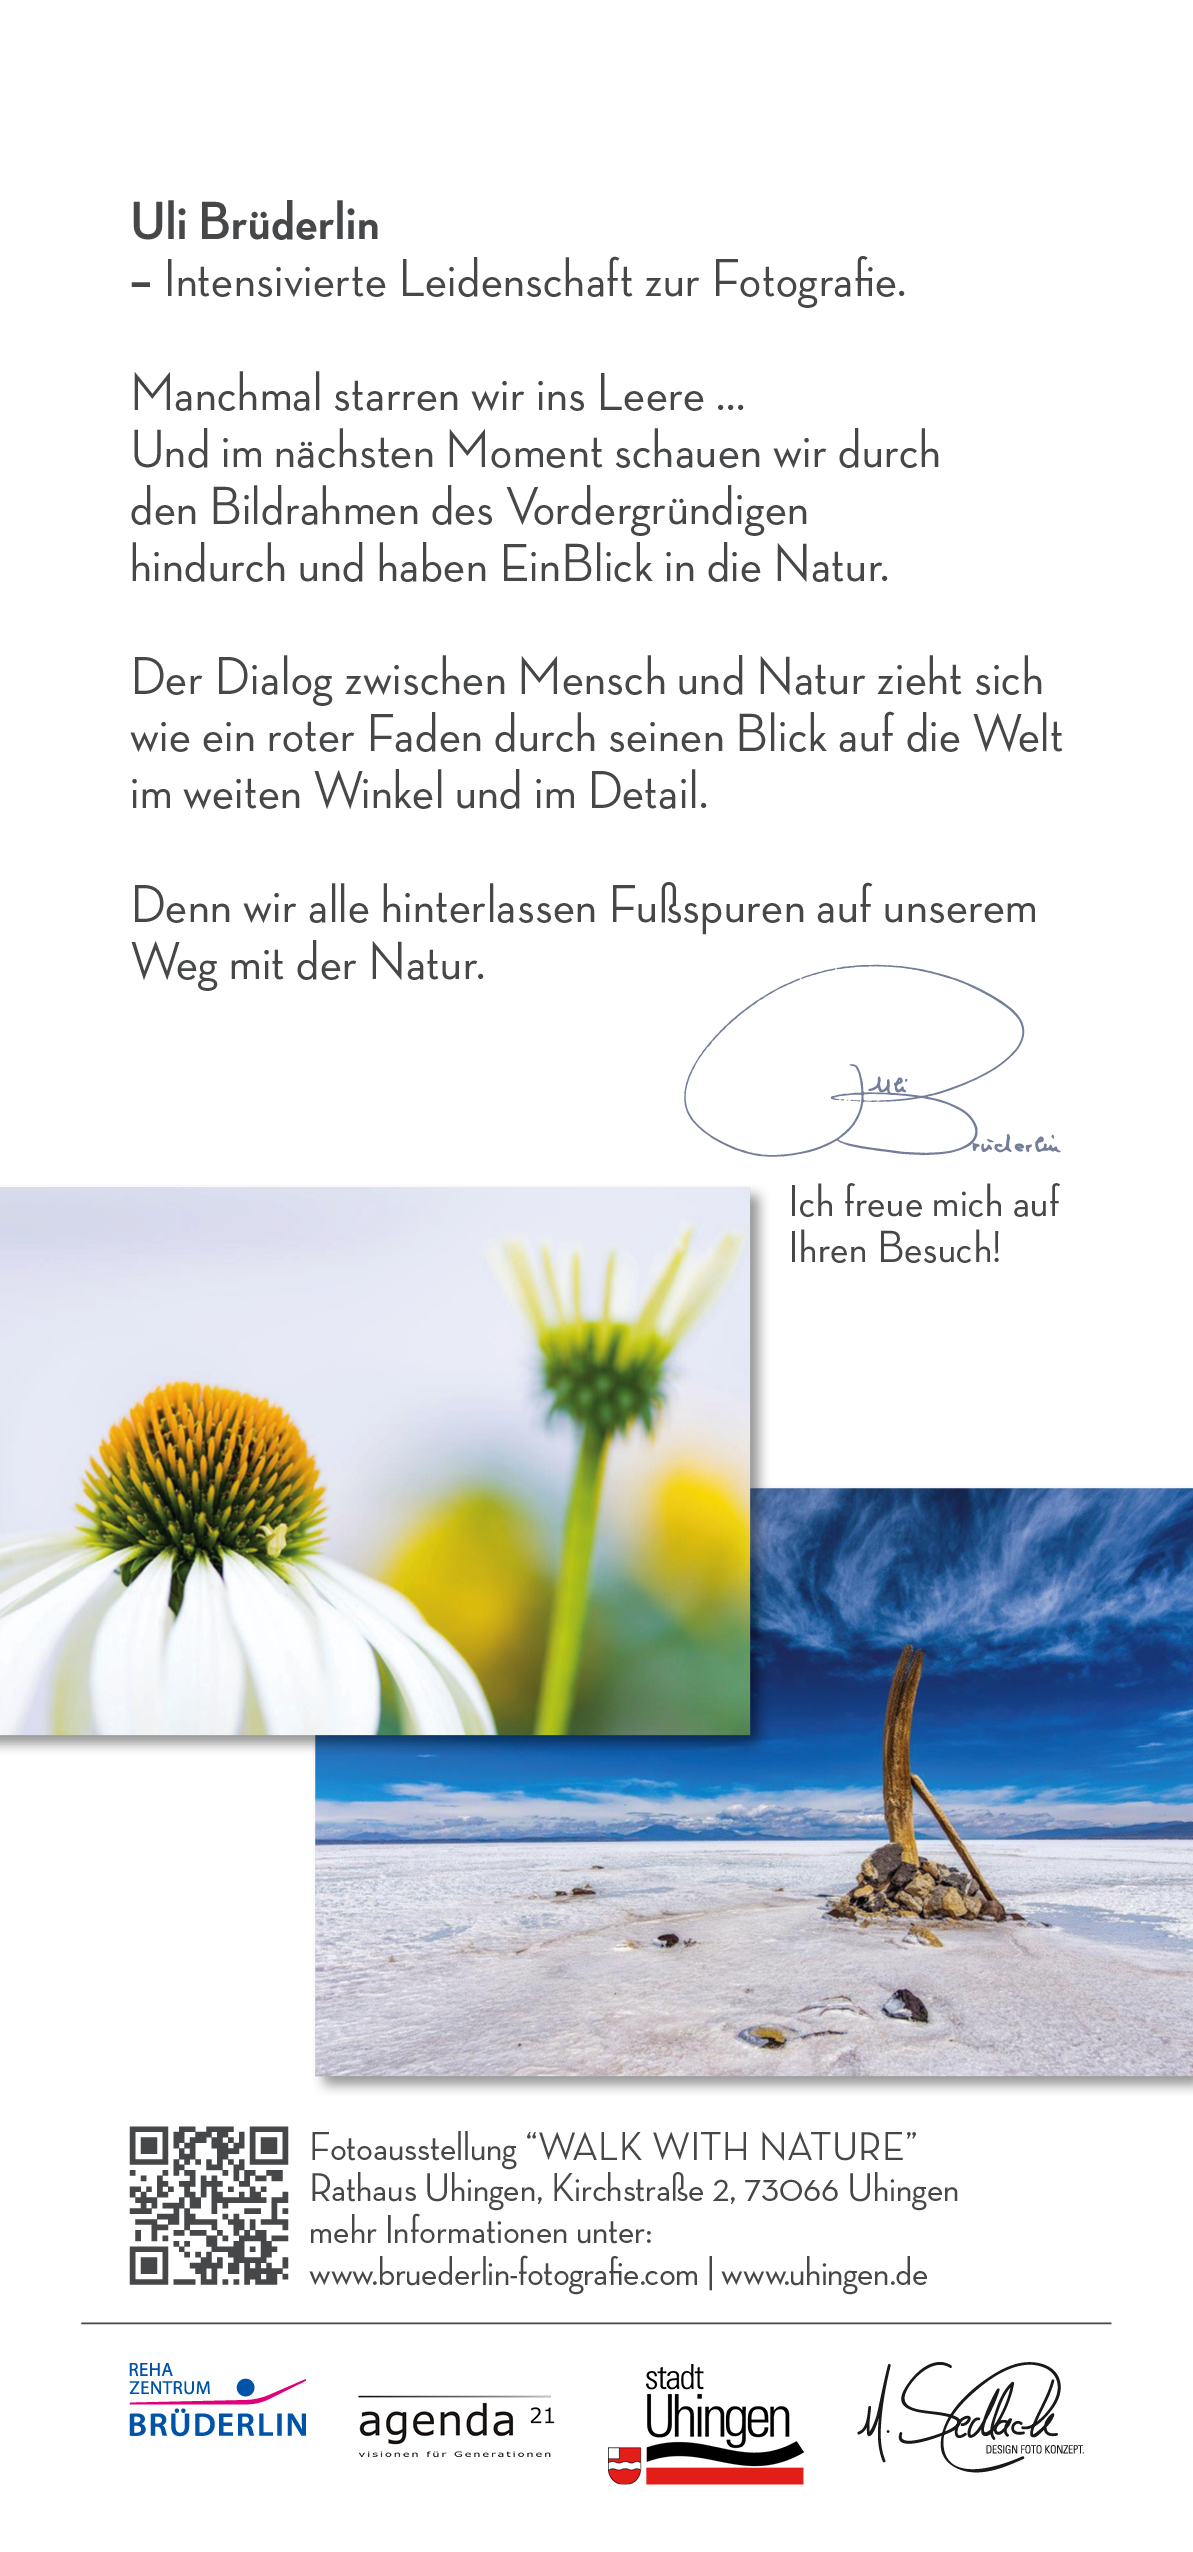 Uli Flyer 6 walk with natur RZ2.jpg